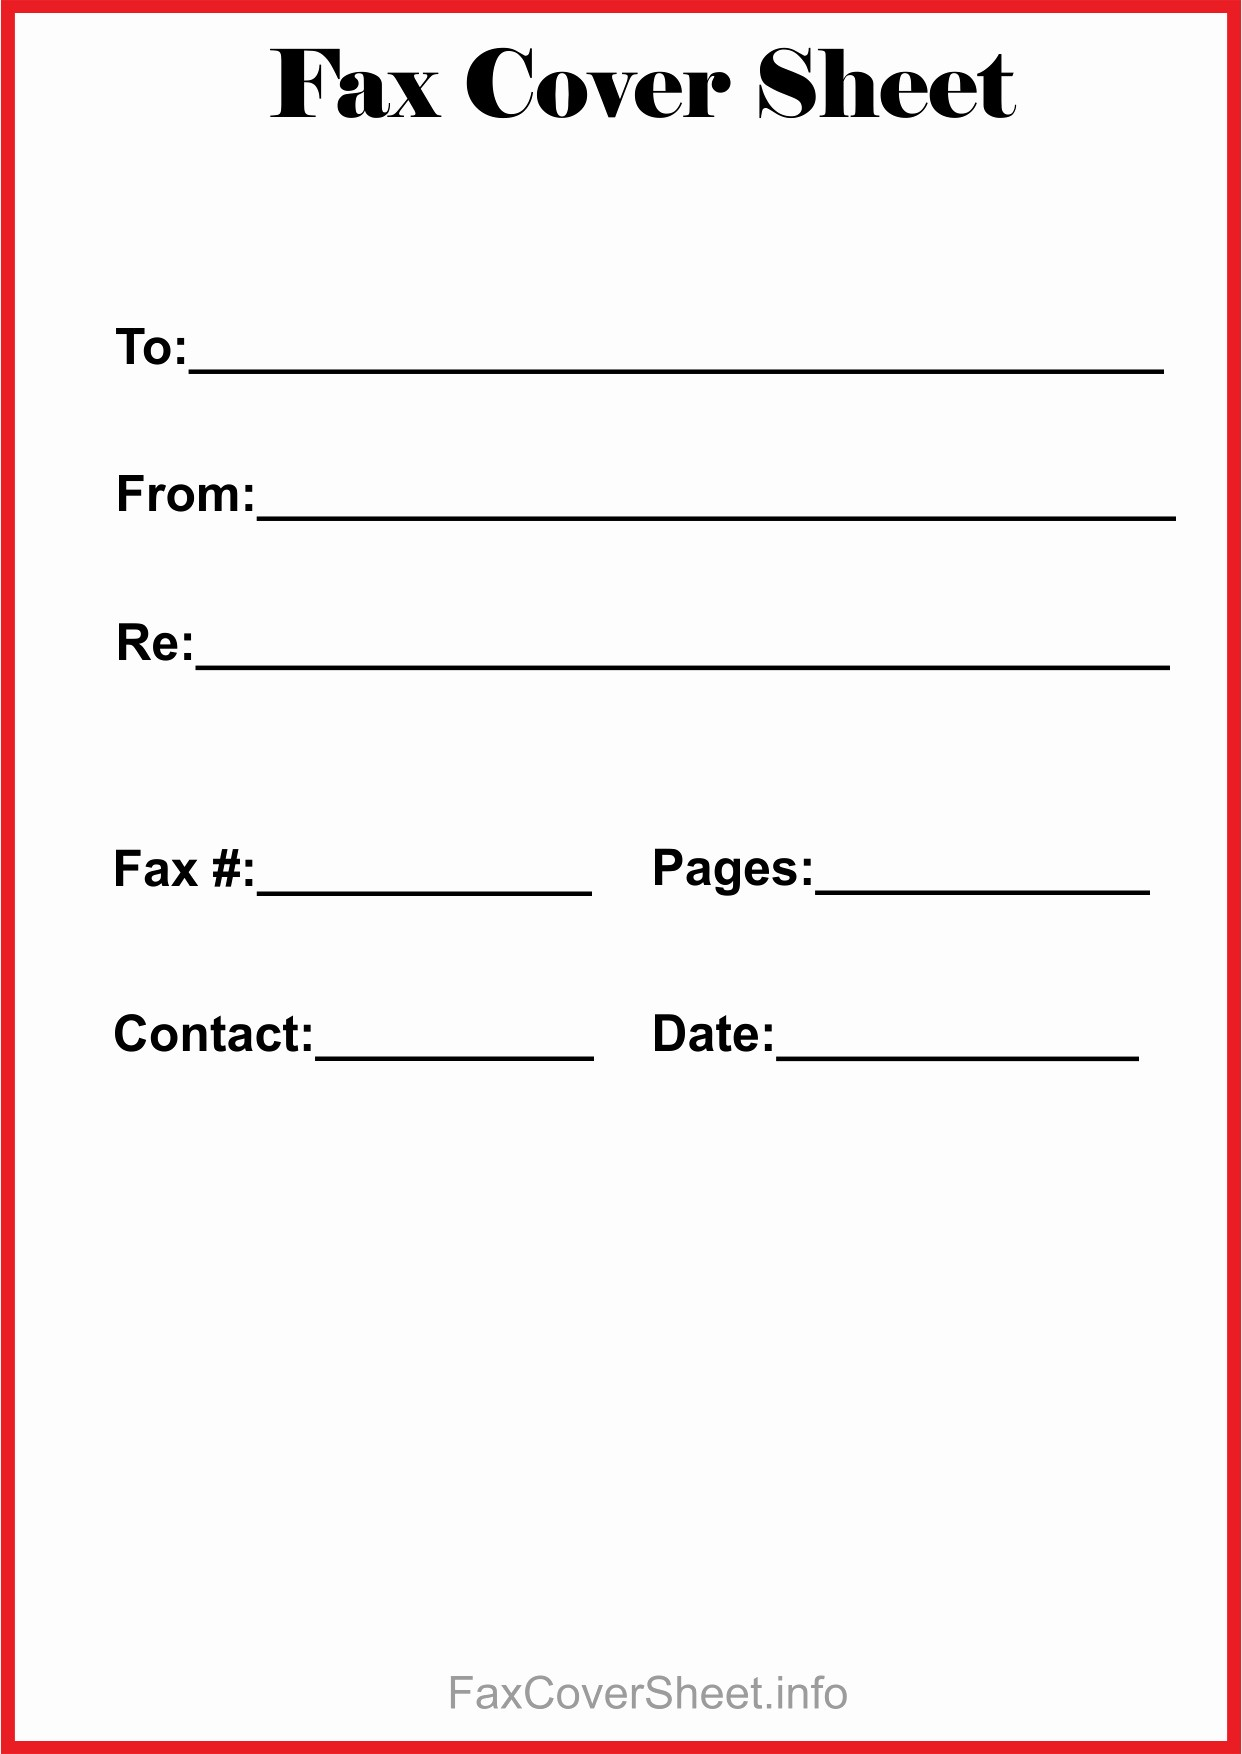 Printable Cover Sheet for Fax Elegant Free Fax Cover Sheet Template Download